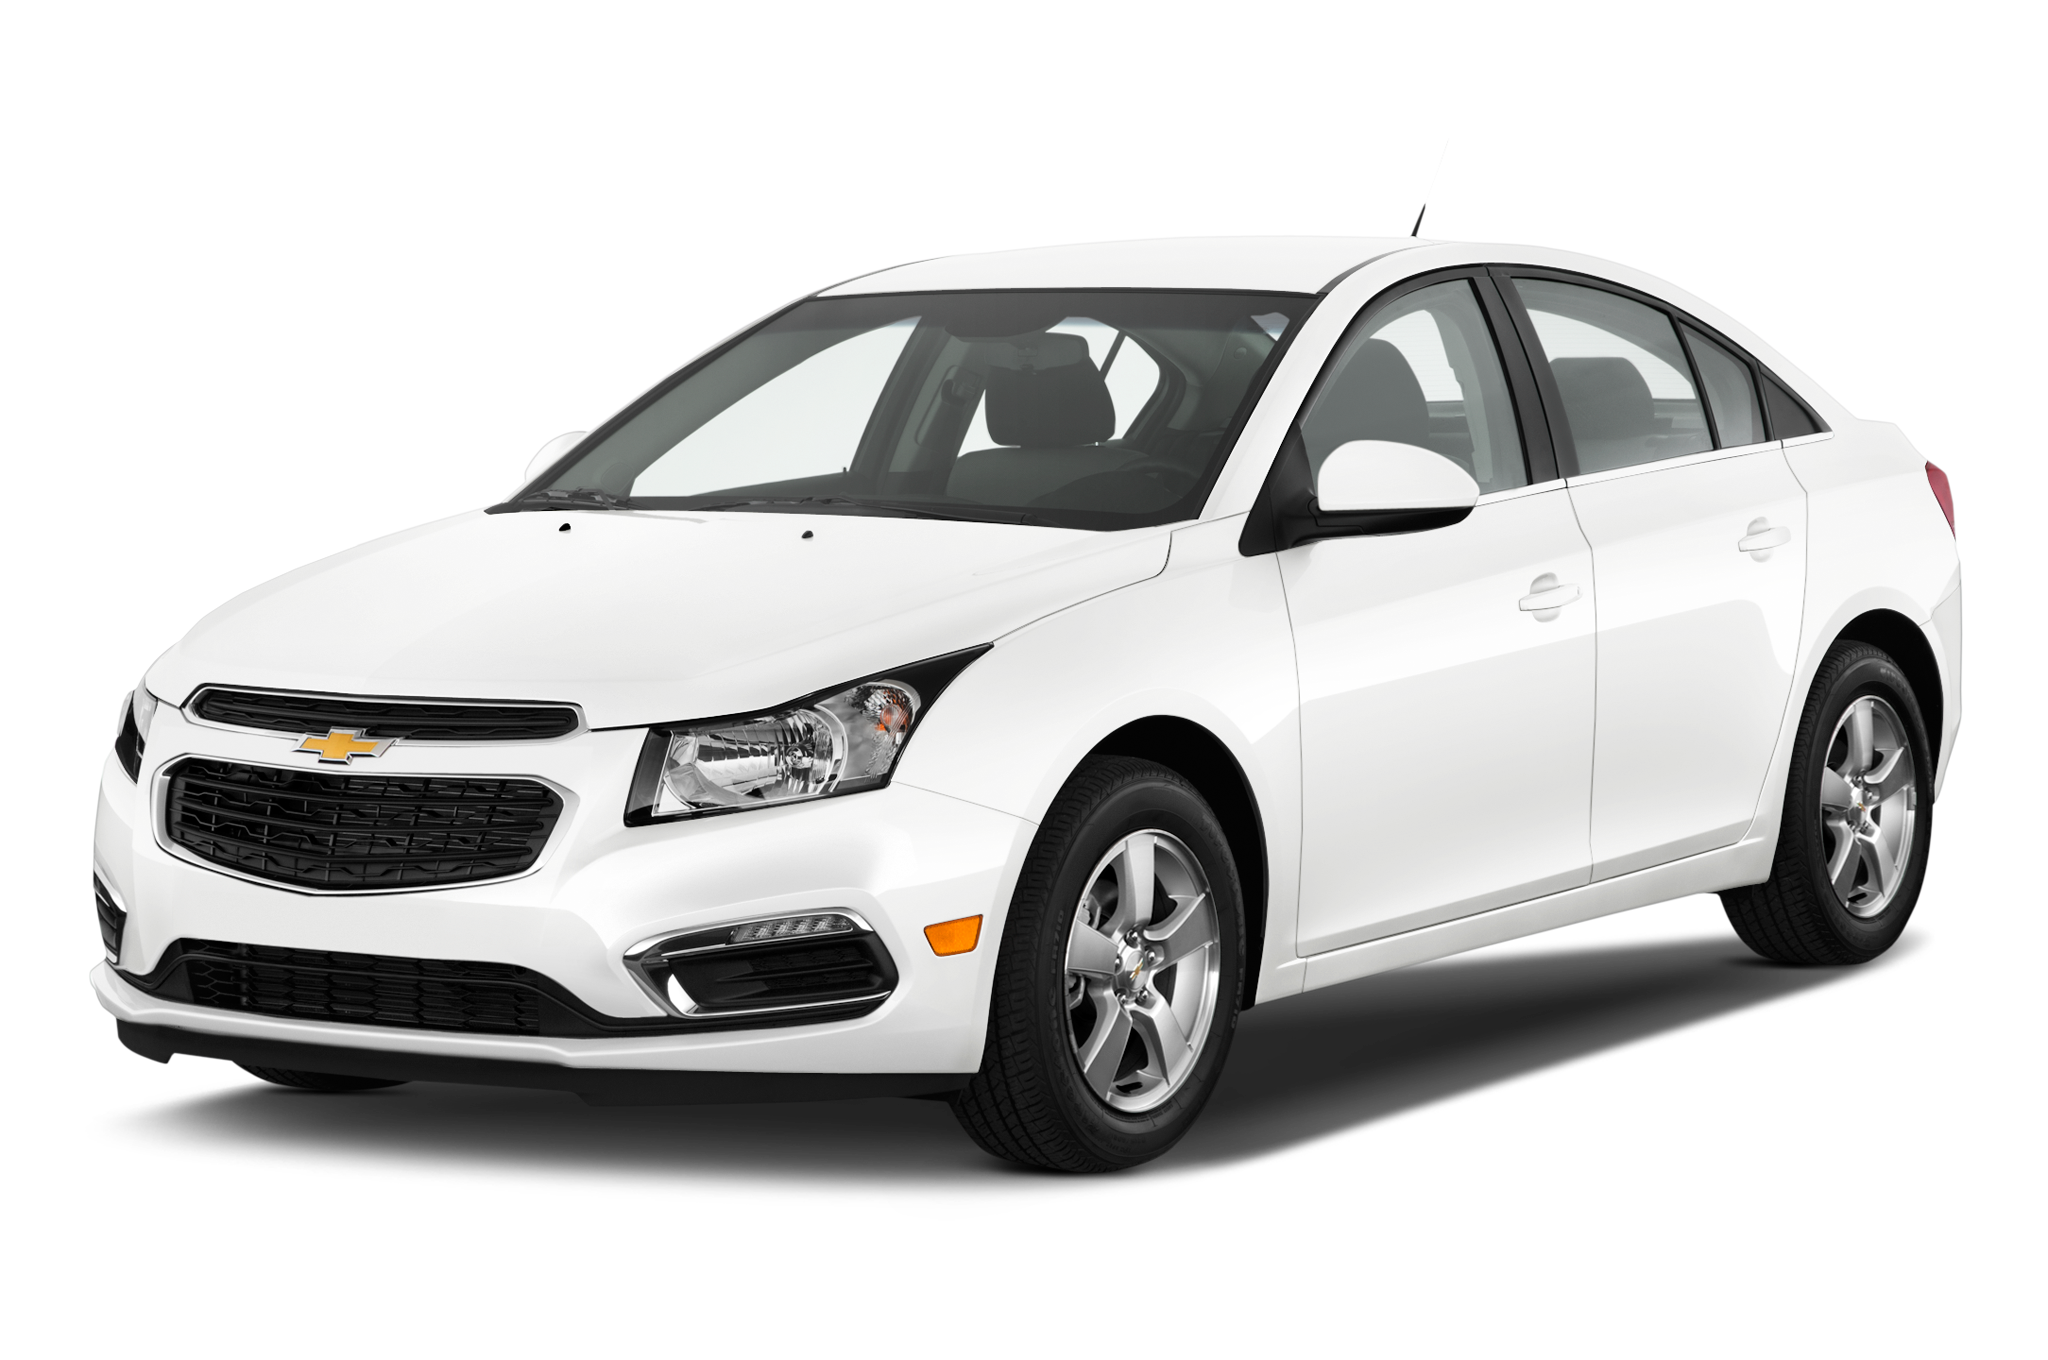 Chevrolet Cruze Owners Manual: Multi-Band Antenna